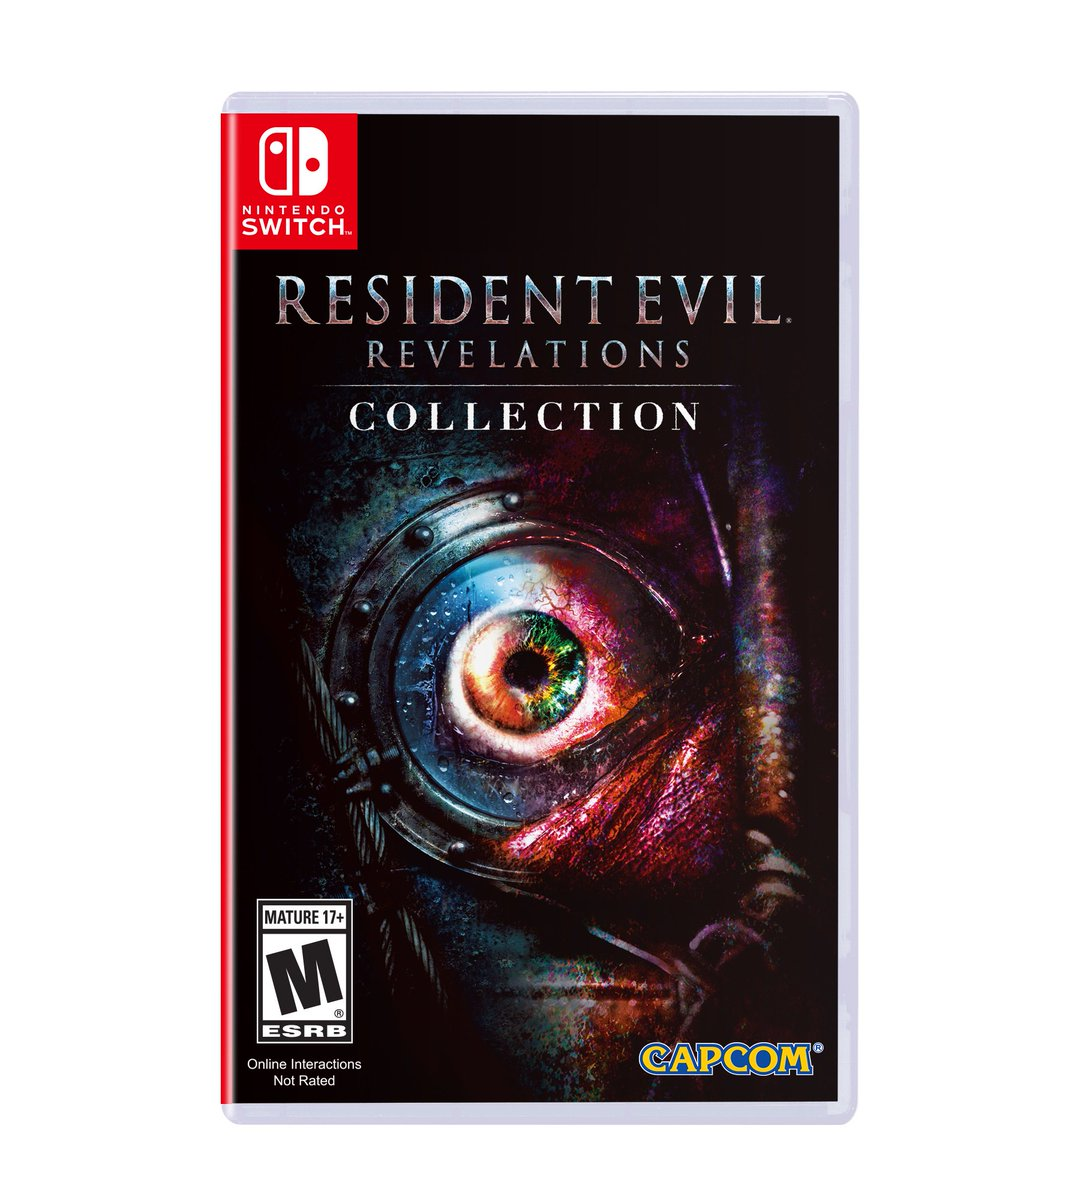 Nintendo Switch: Resident Evil Revelation Collection (US)